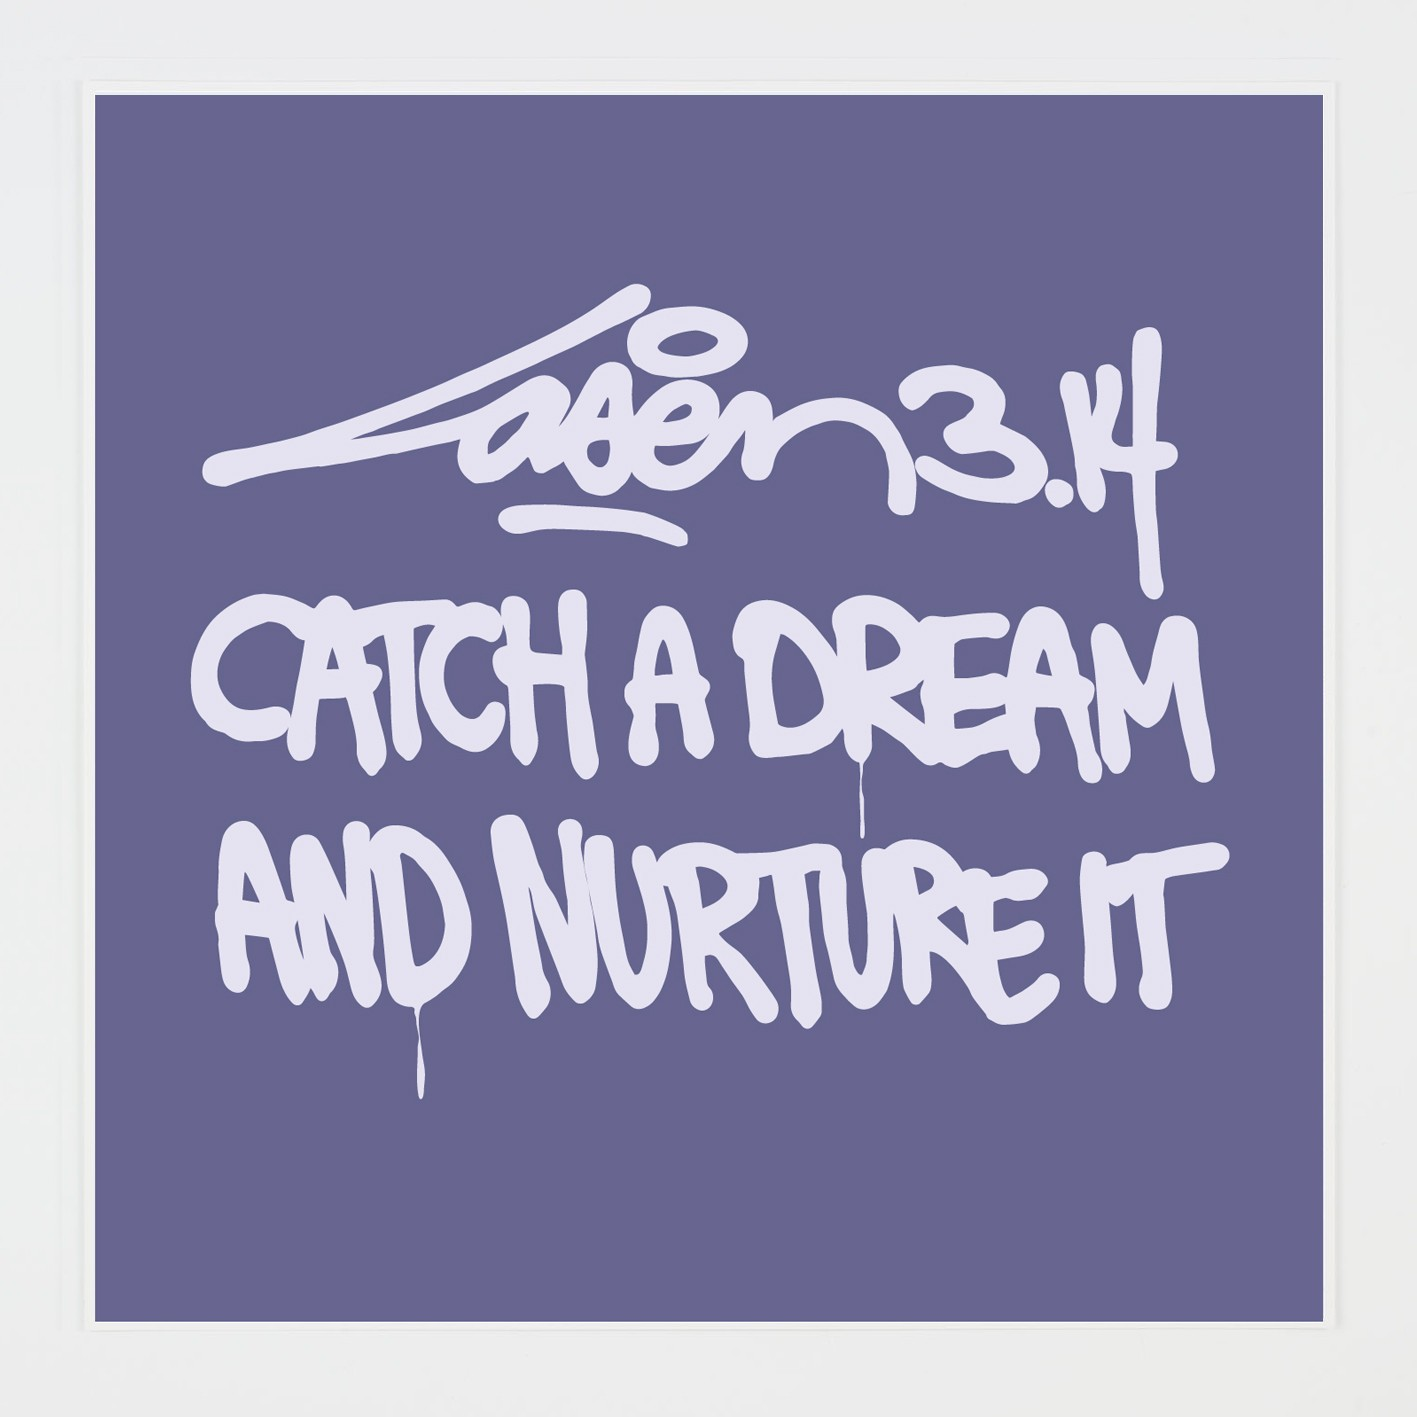 Catch A Dream And Nurture It - Laser 3.14, 2014